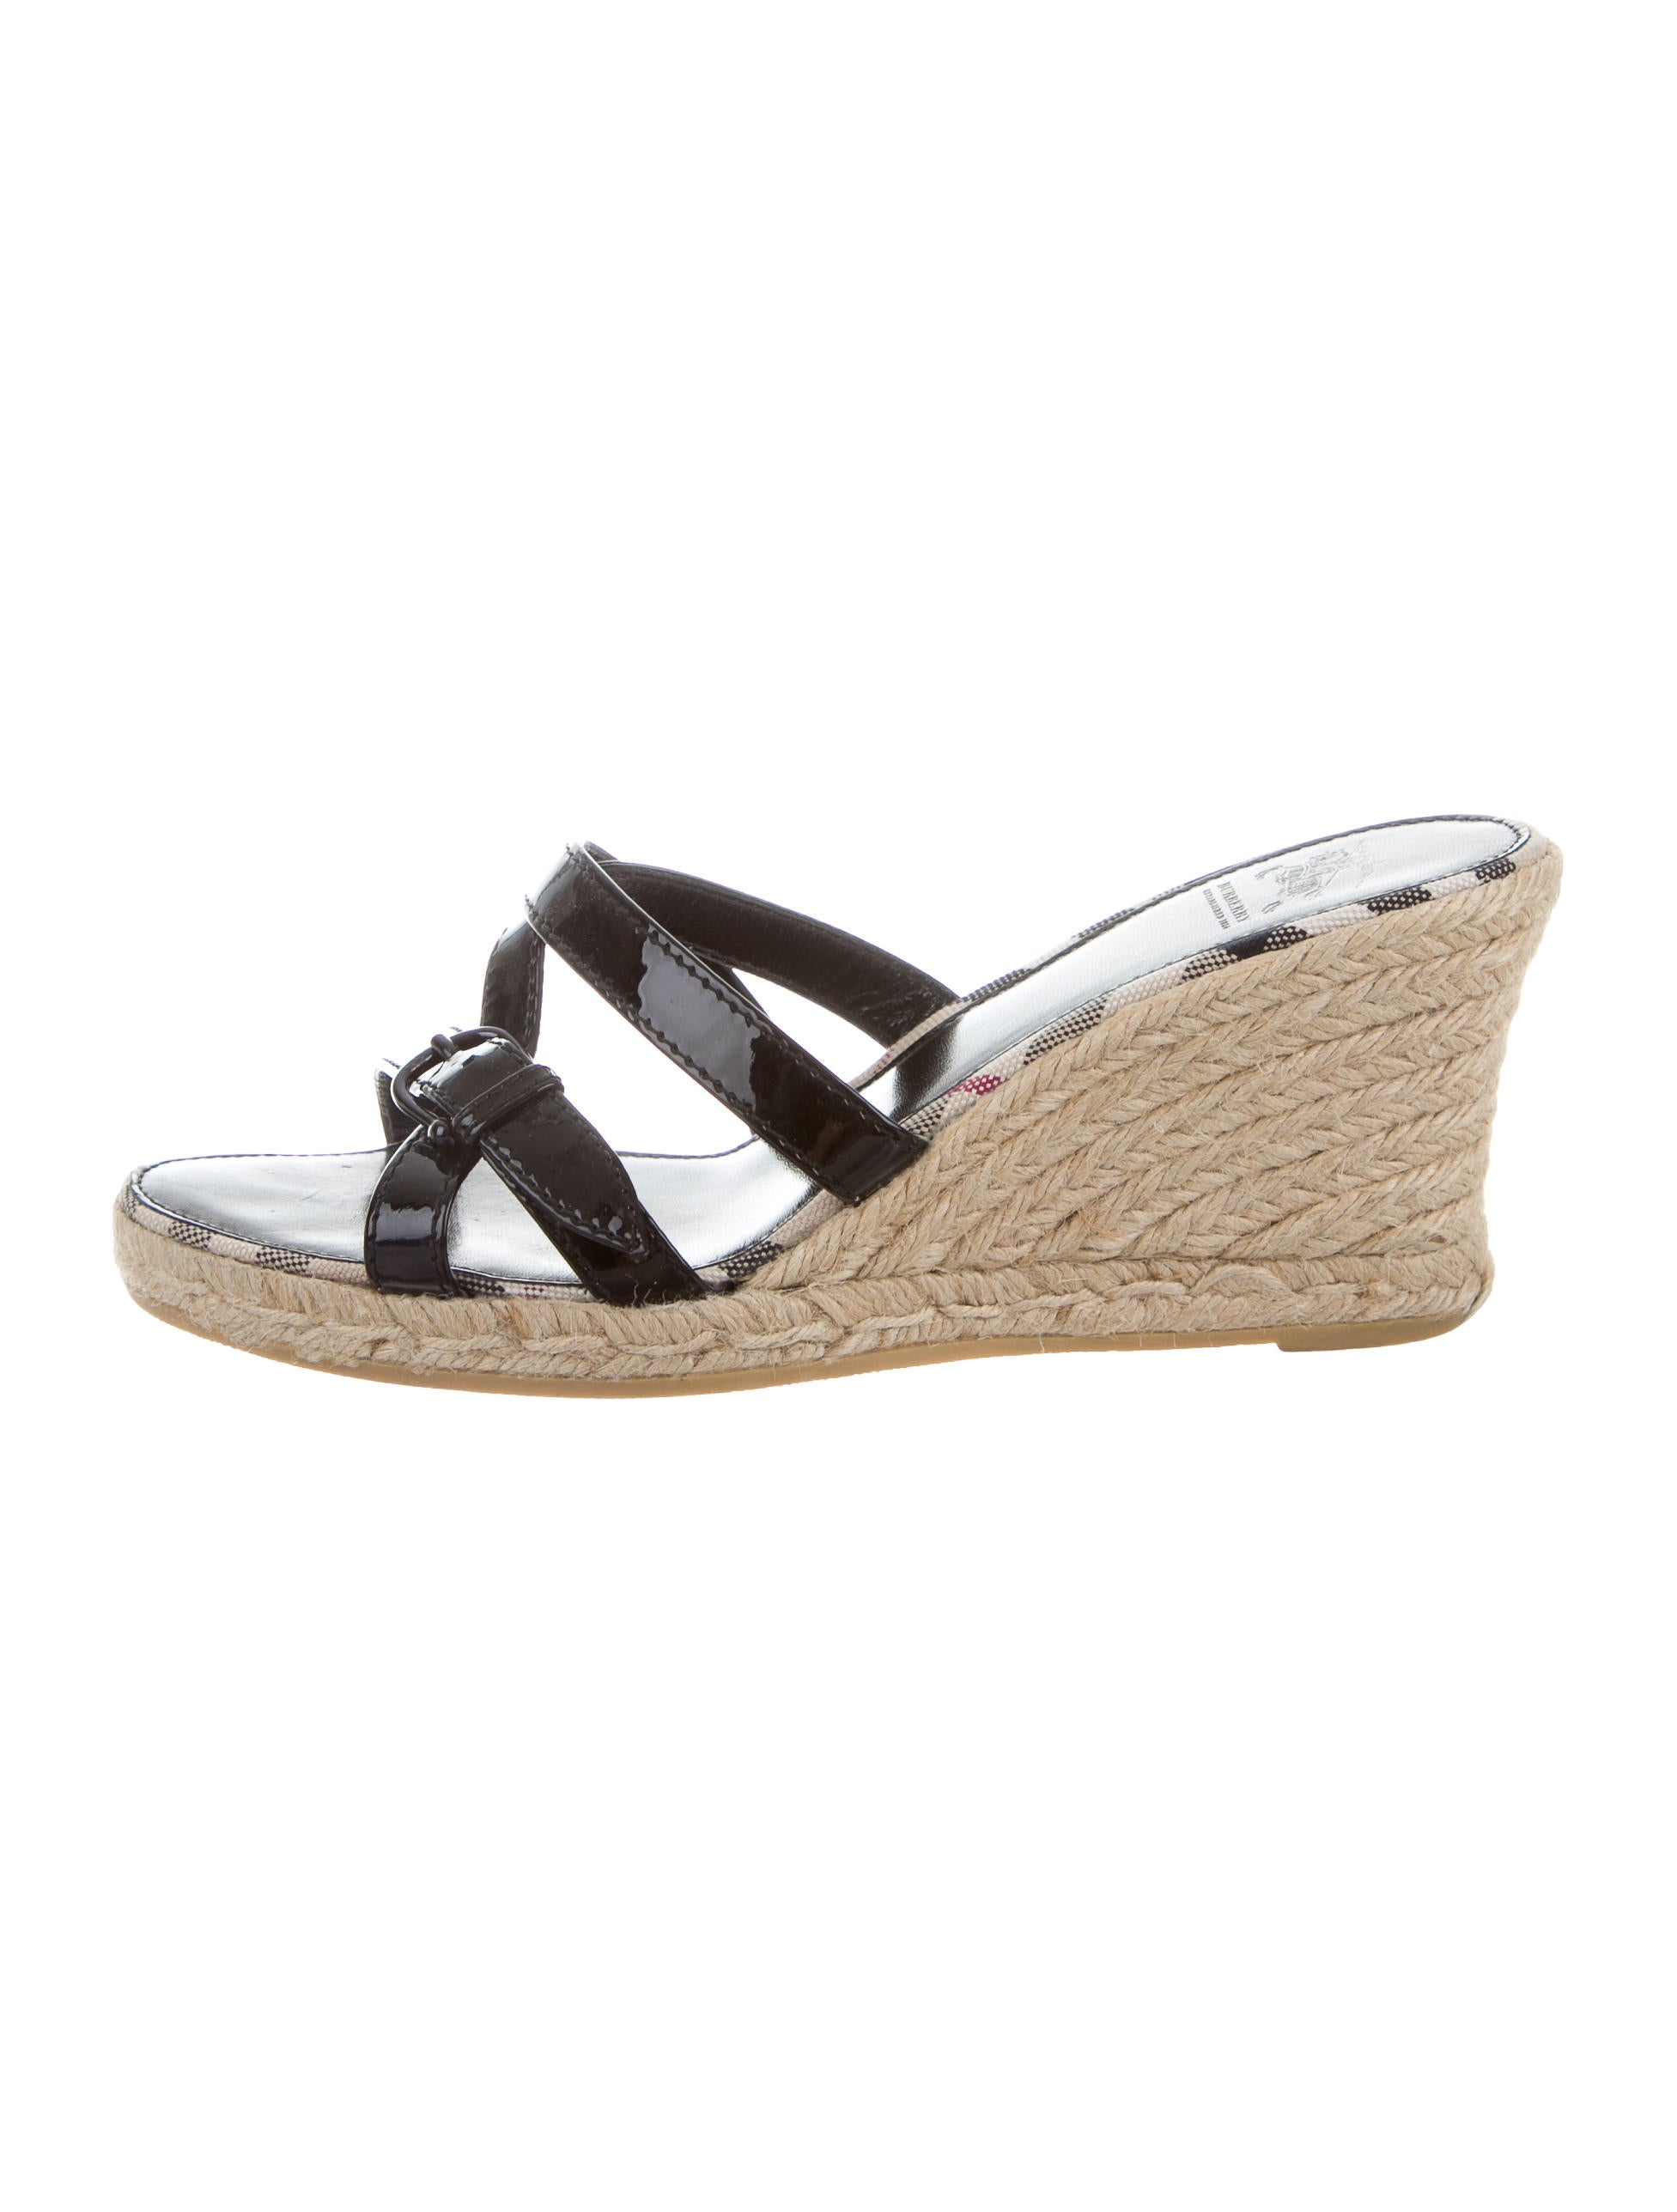 burberry patent leather slide wedges shoes bur65183